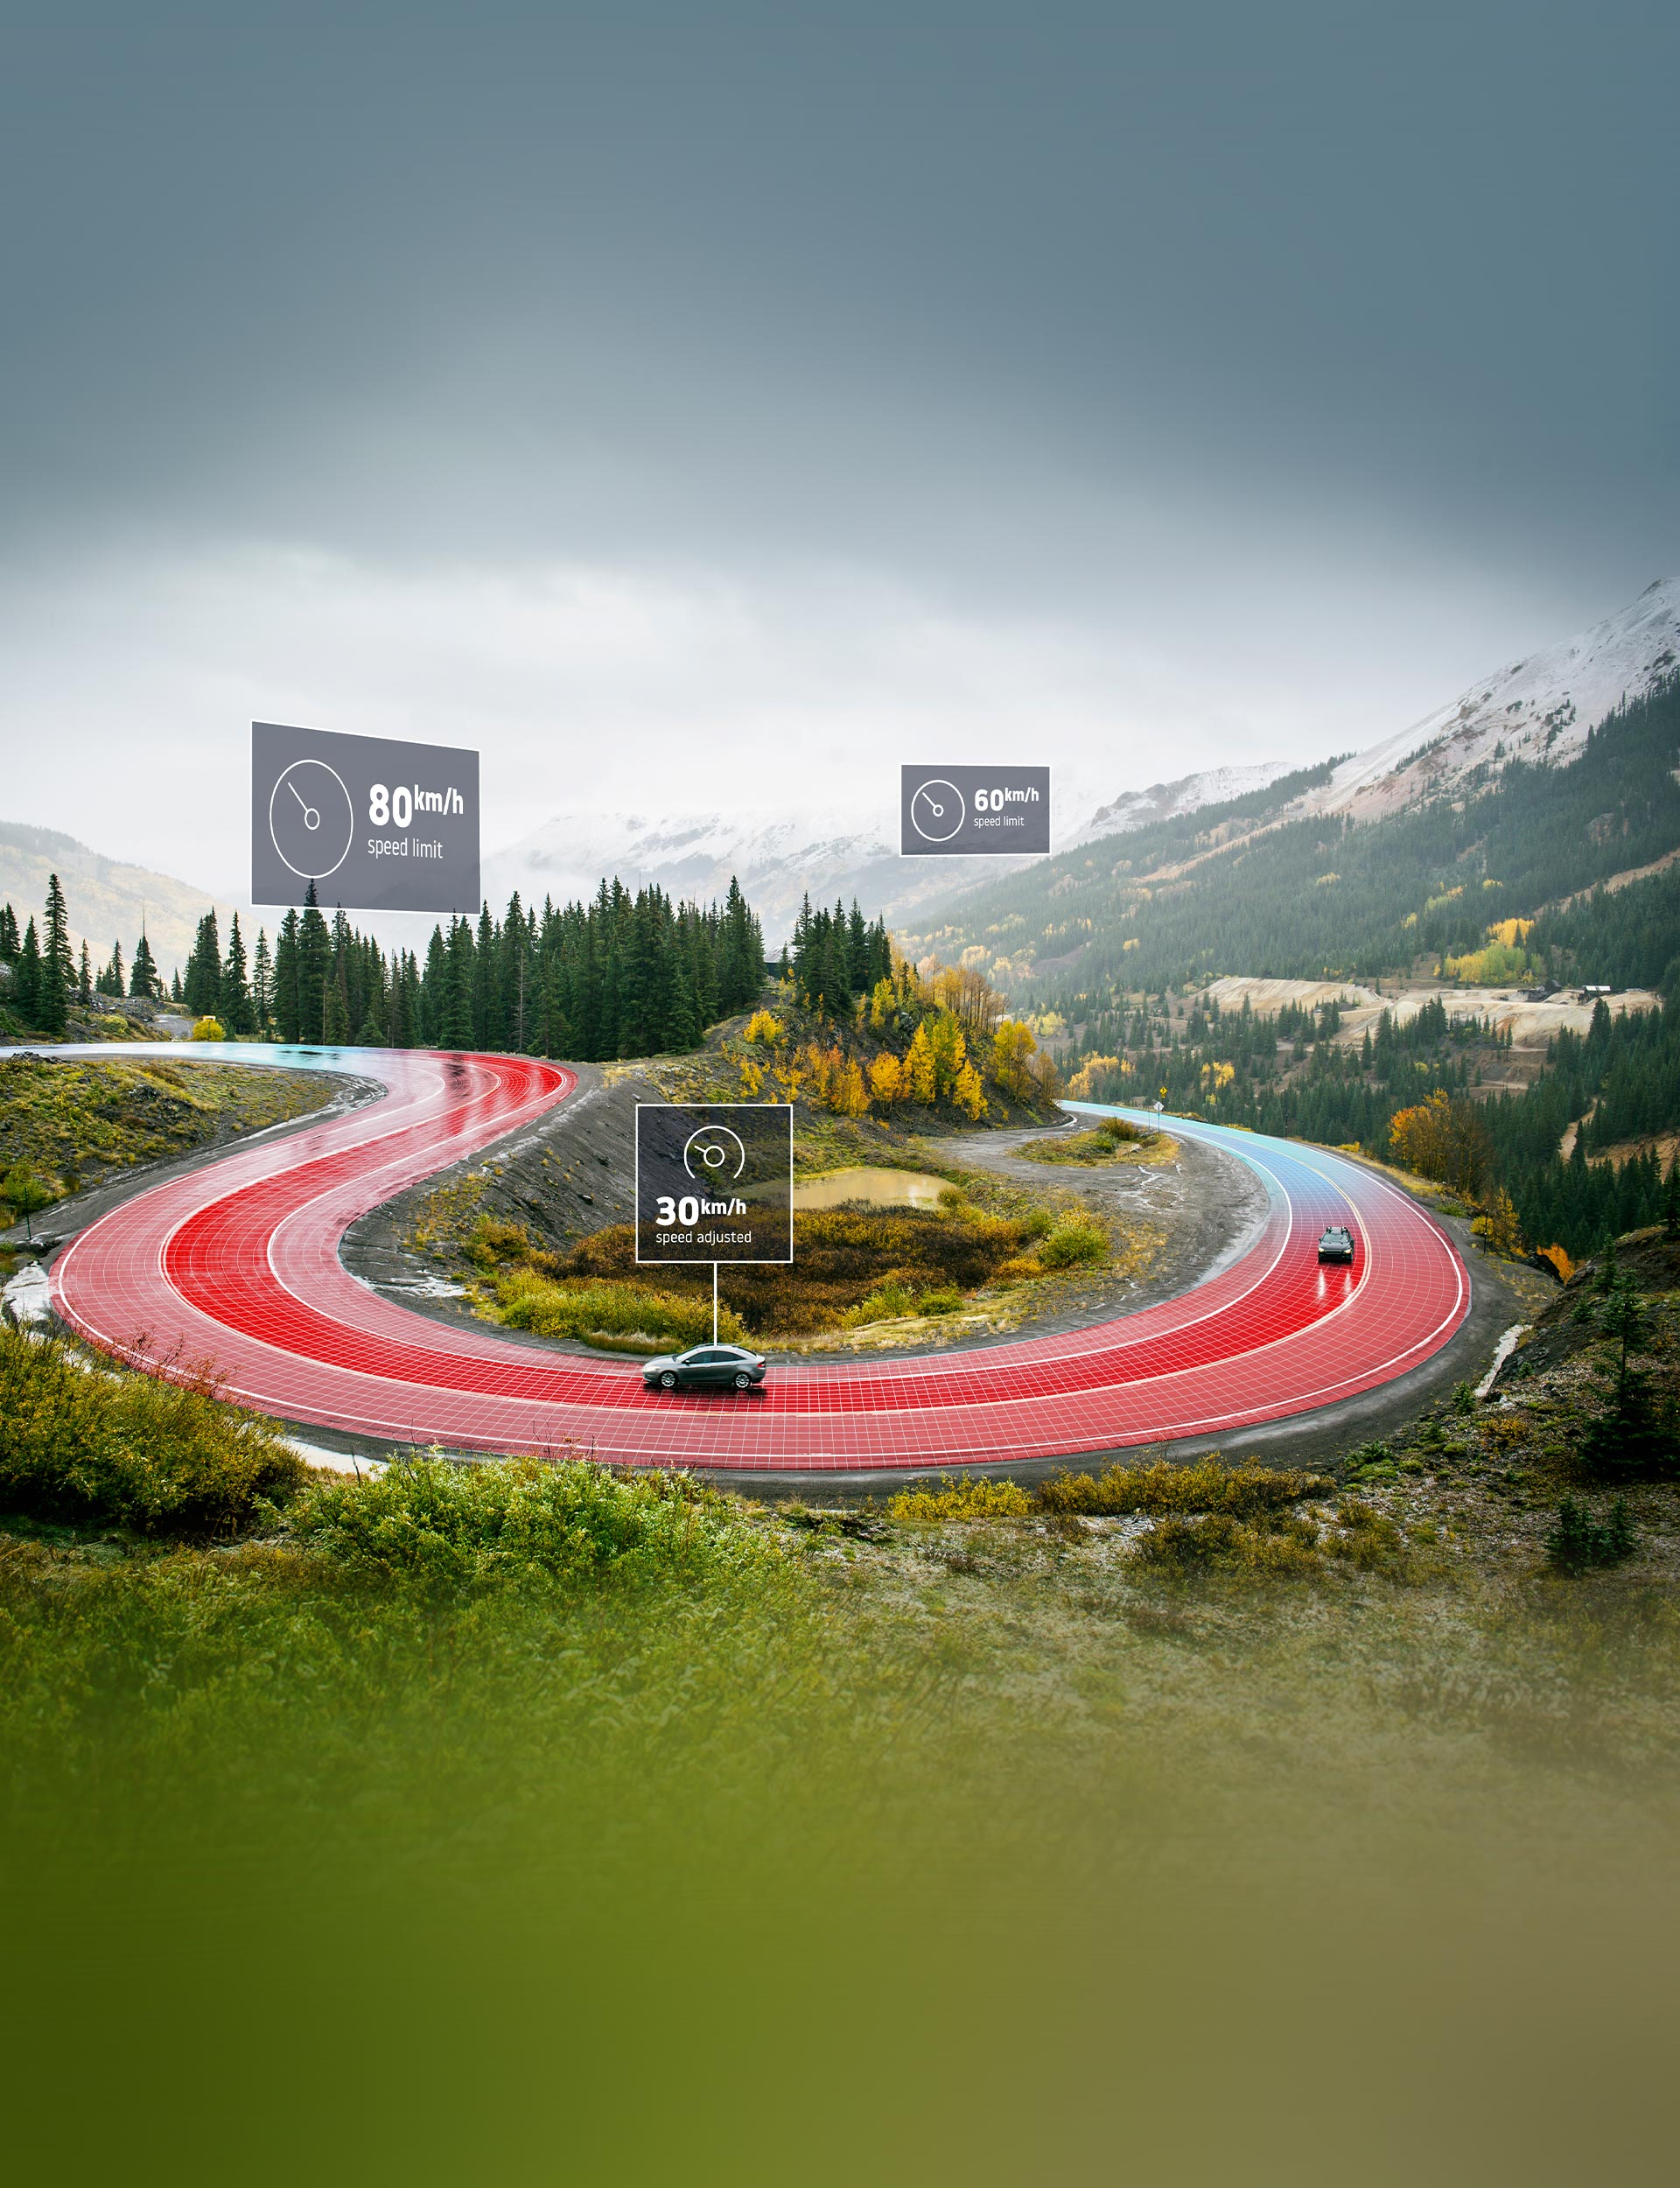 TomTom helps automakers fast-track Intelligent Speed Assistance (ISA) compliance